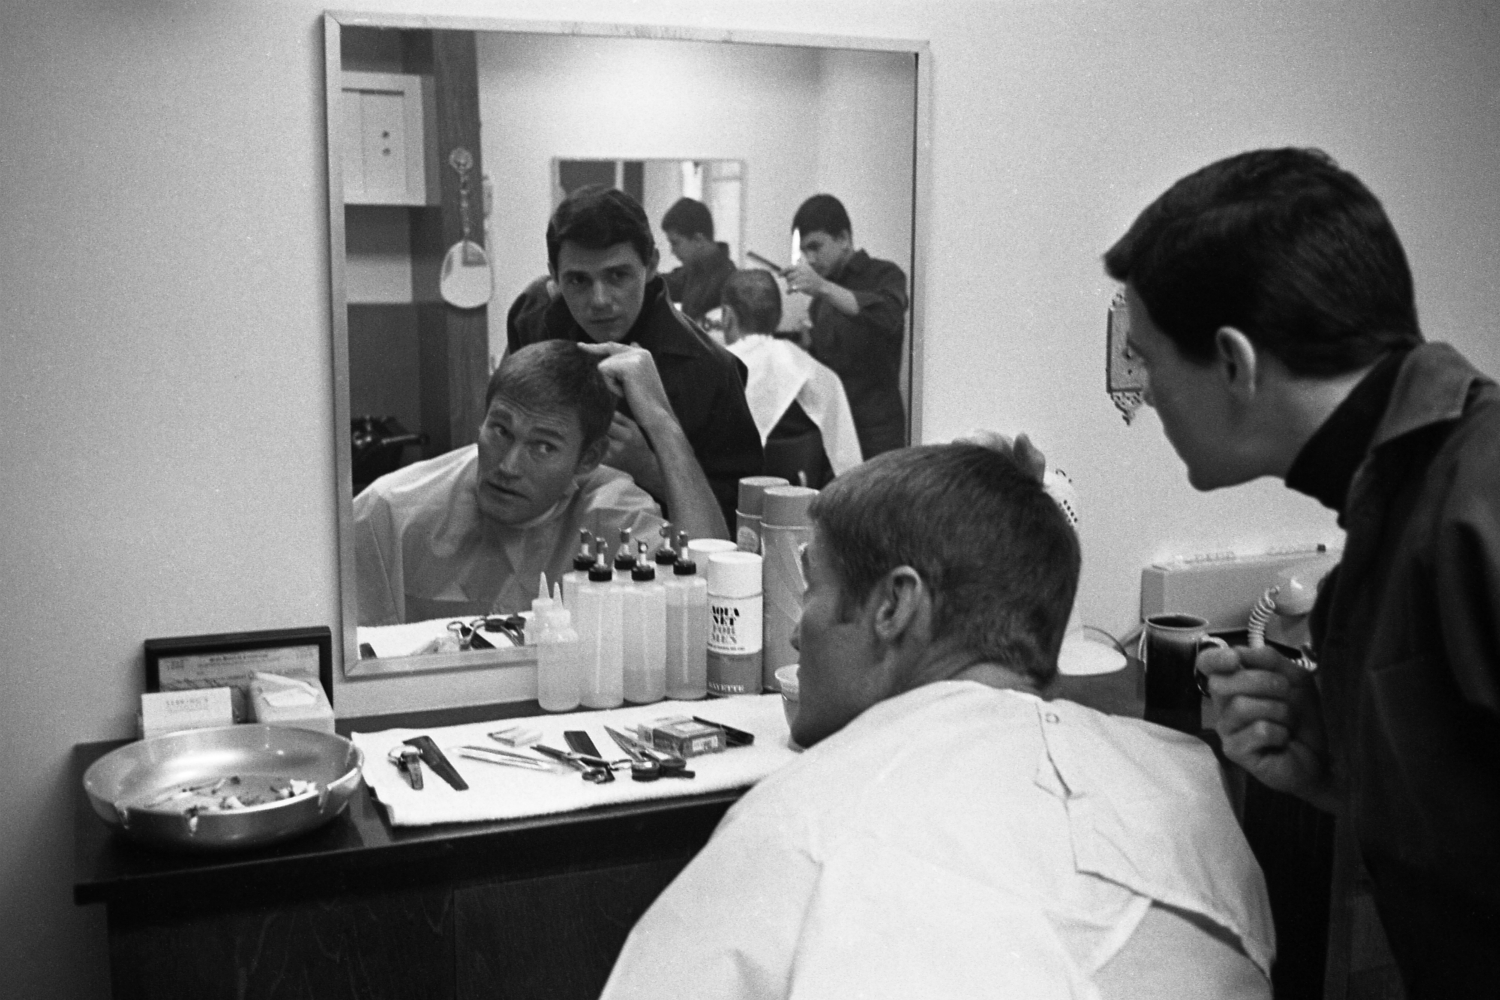 A New Documentary on Hollywood Hairdresser and Manson Murder Victim Jay Sebring is Coming Soon